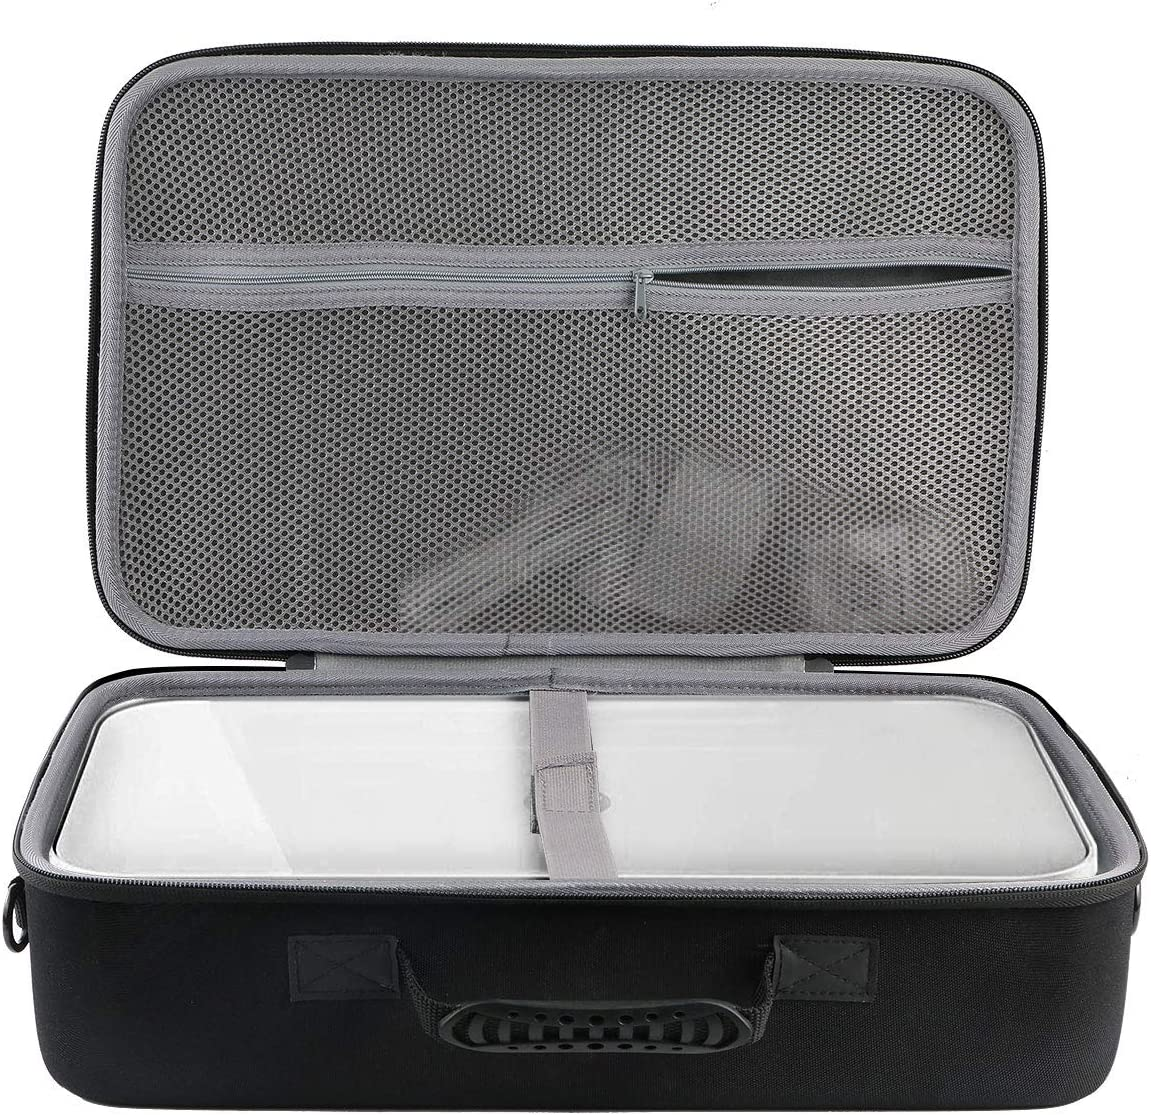 co2crea Hard Travel Case for HP Tango/Tango X Smart Home Printer 2RY54A / 3DP64A